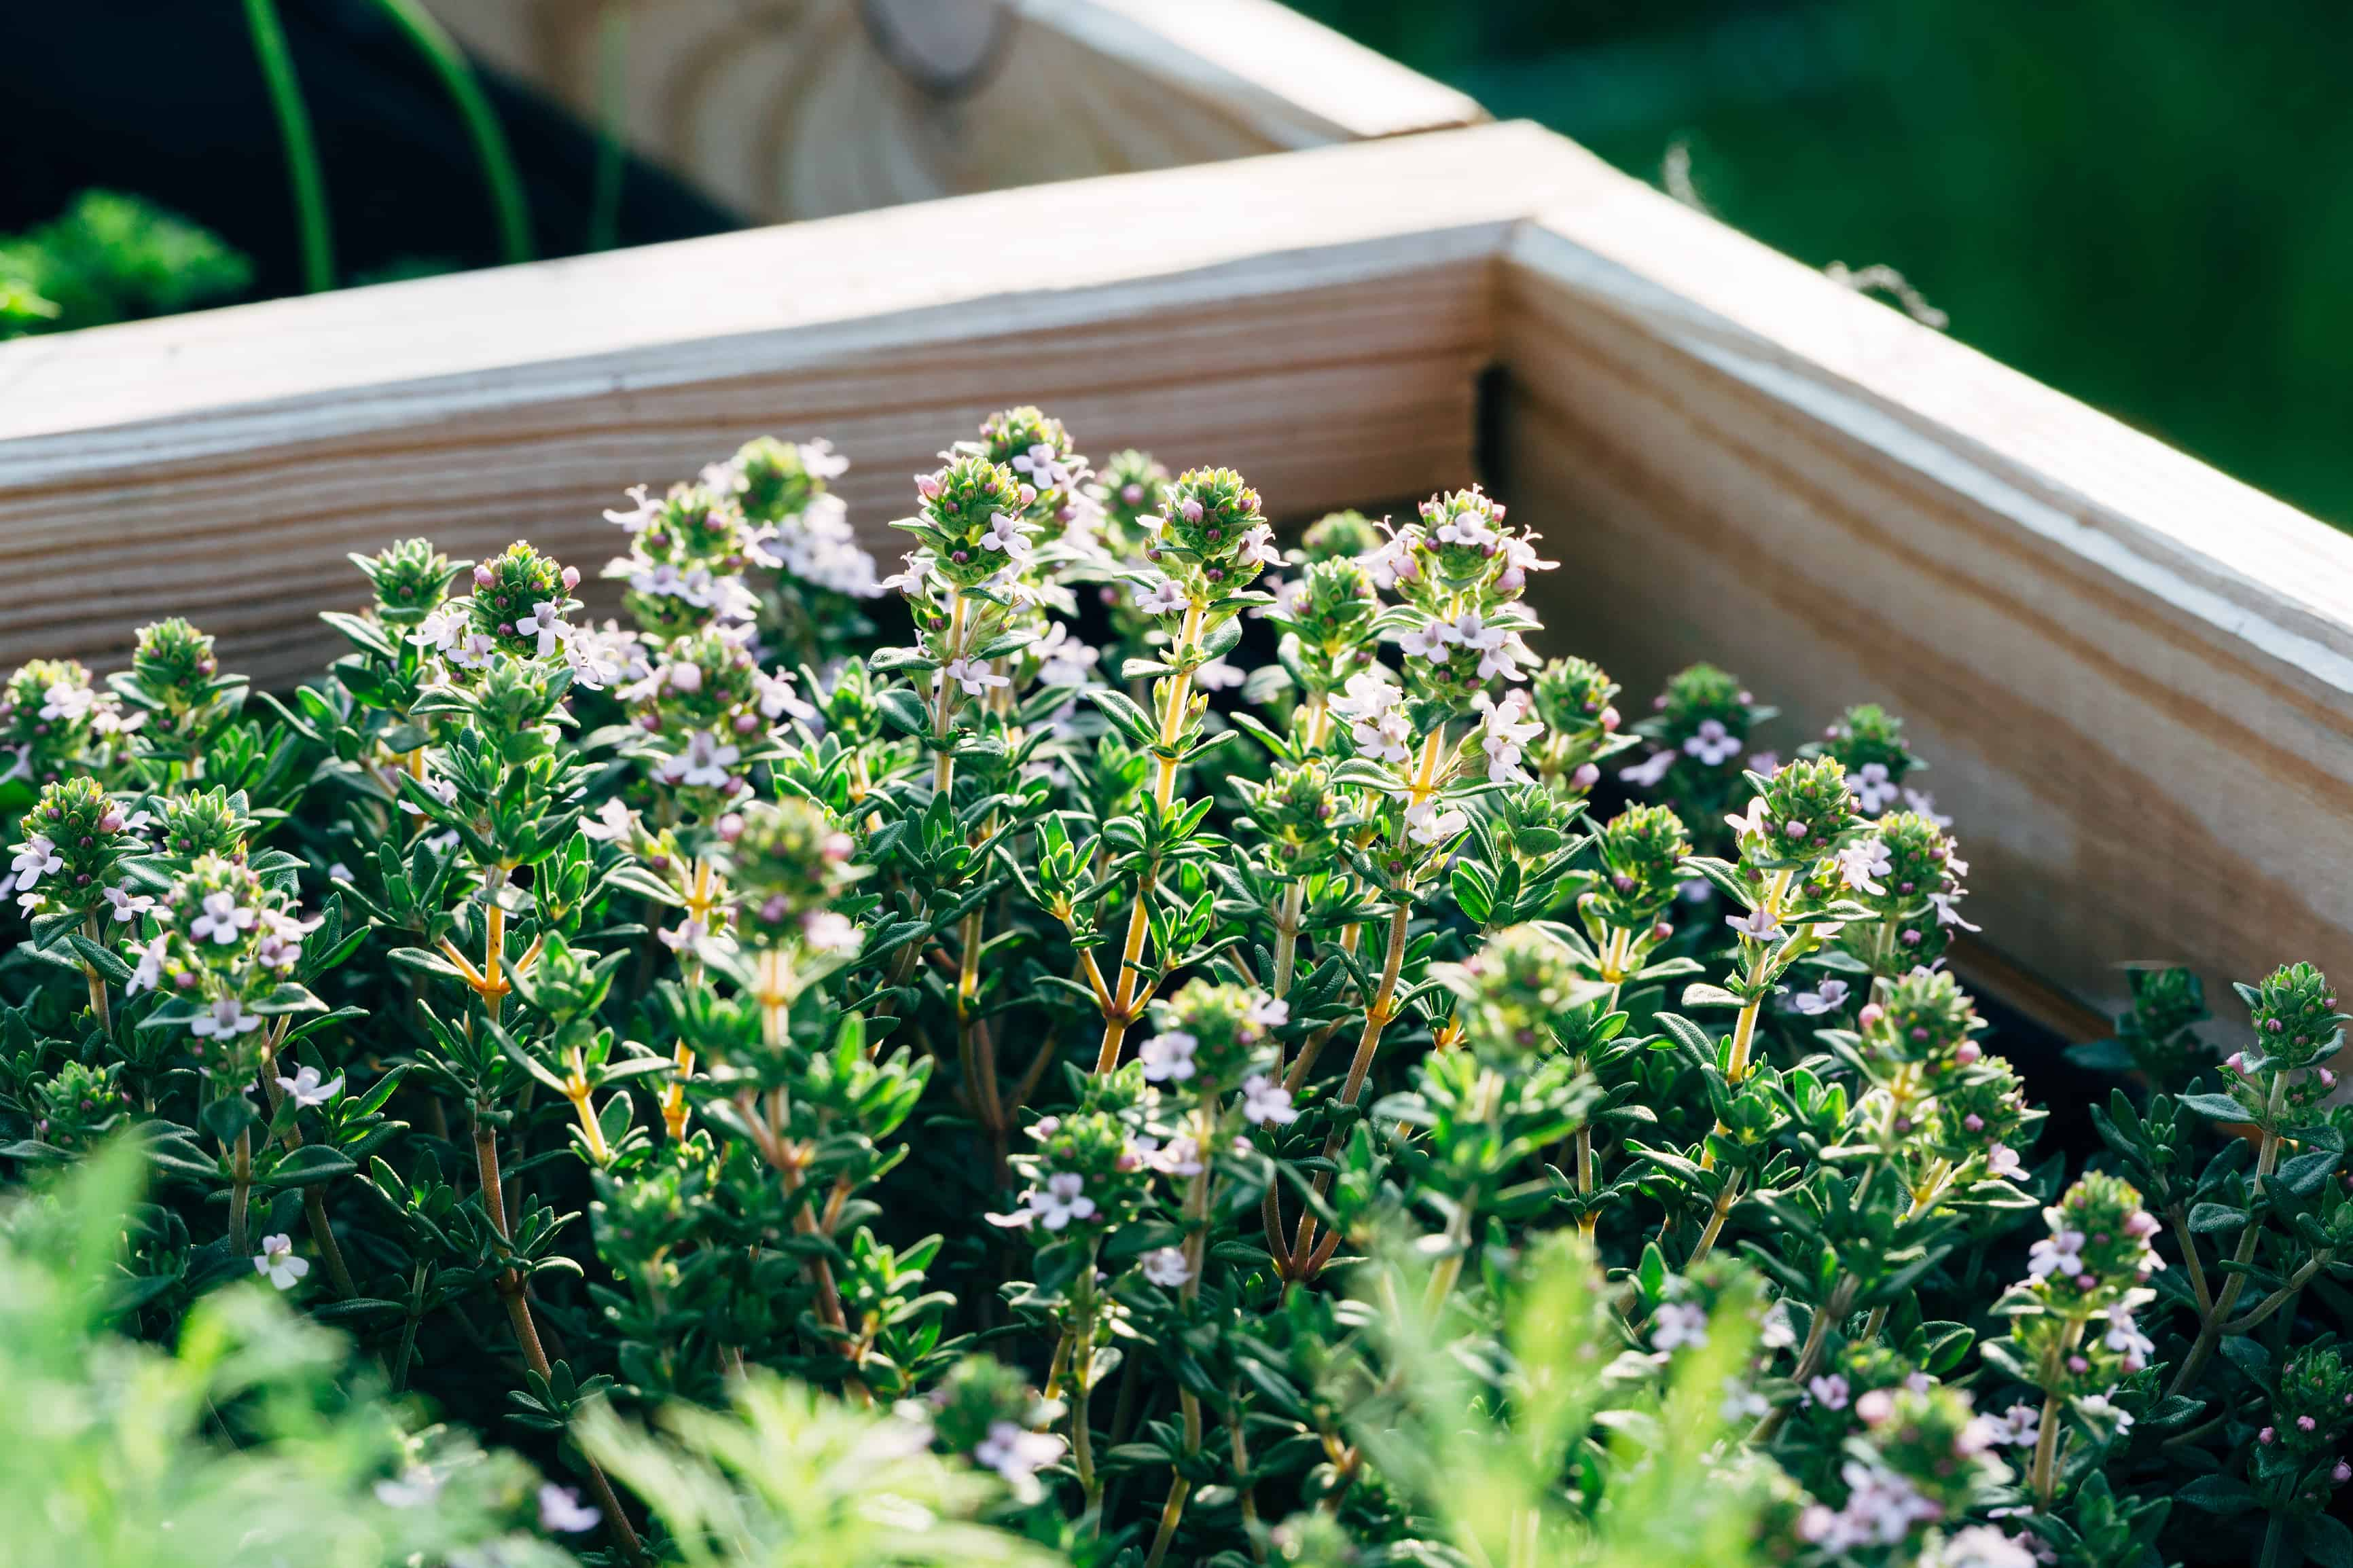 How to grow thyme: thyme in bloom